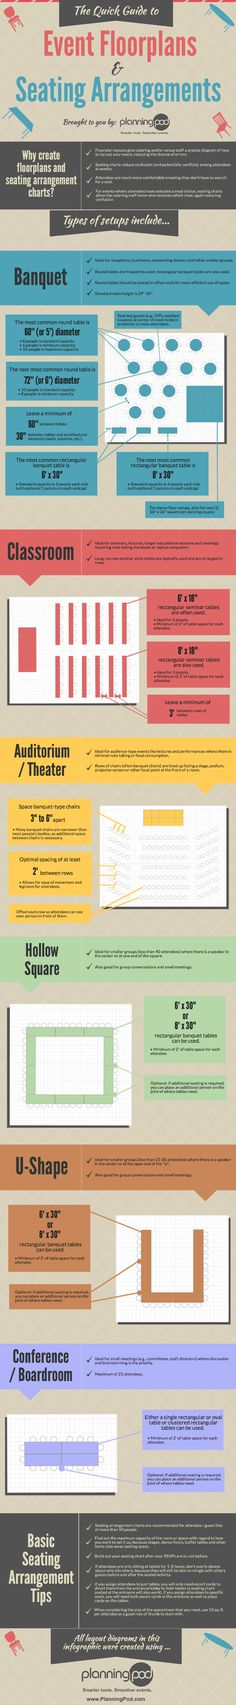 Infographic on building event floor plans and seating arrangements from Planning Pod